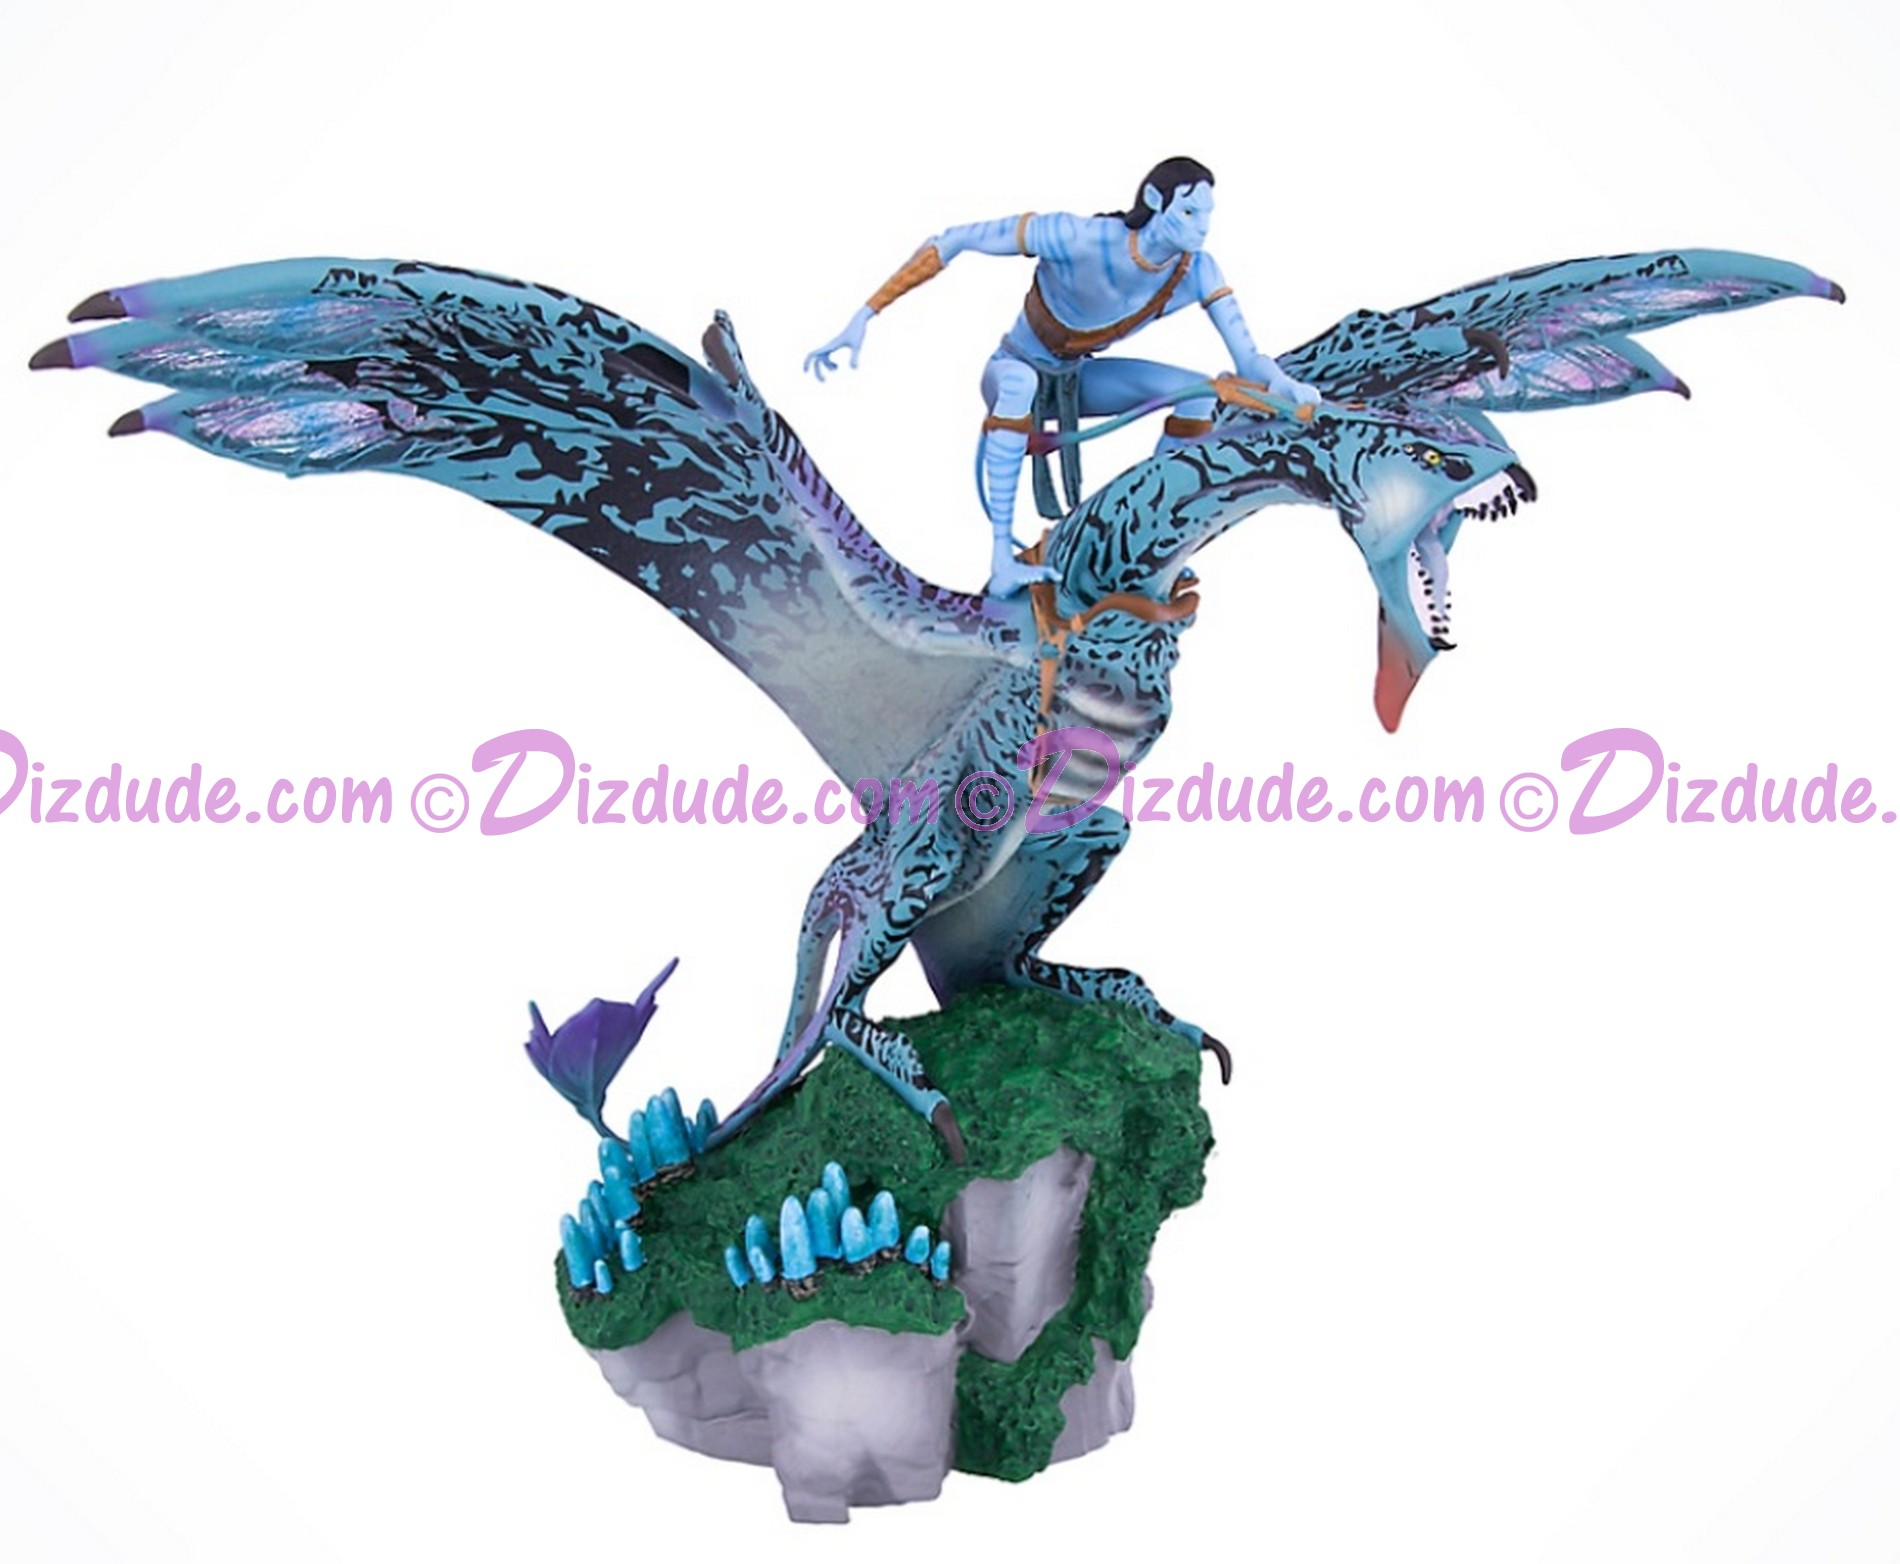 Avatar Jake Sully Riding A Banshee Medium Big Fig - Disney Pandora – The World of Avatar © Dizdude.com